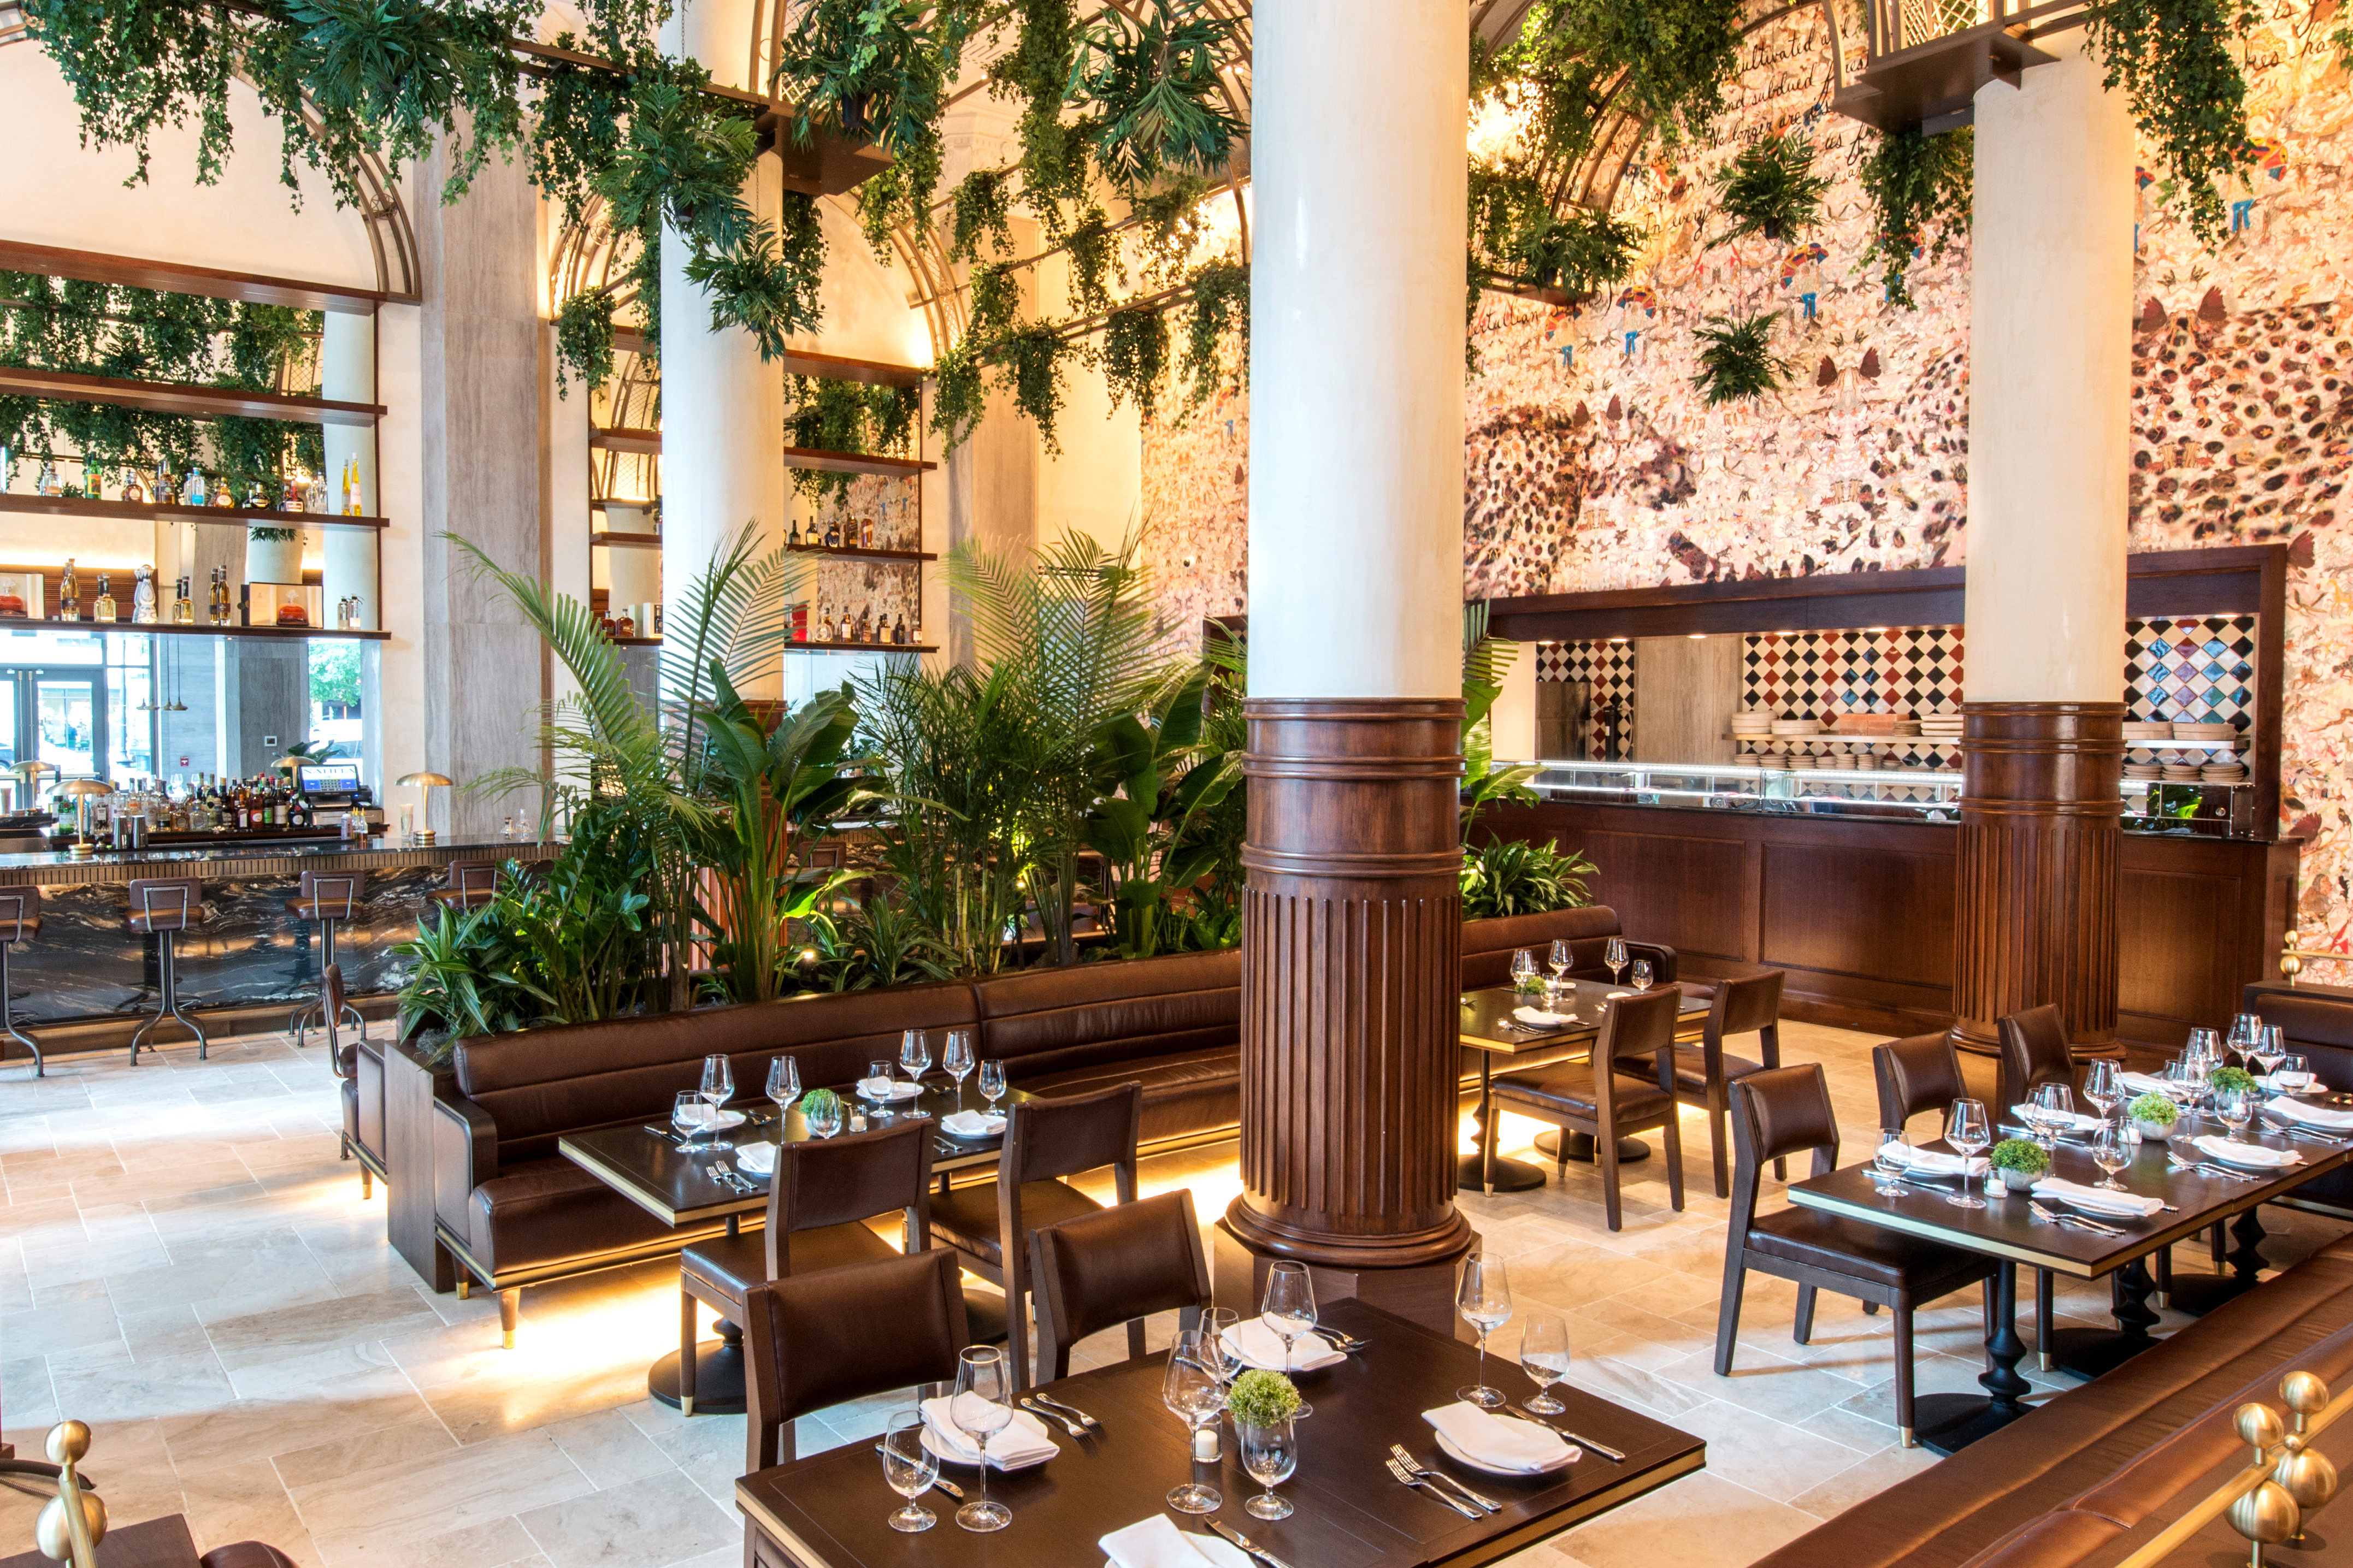 Critic Finds 'Sexy, Grazeable Food' at Swanky Back Bay Restaurant